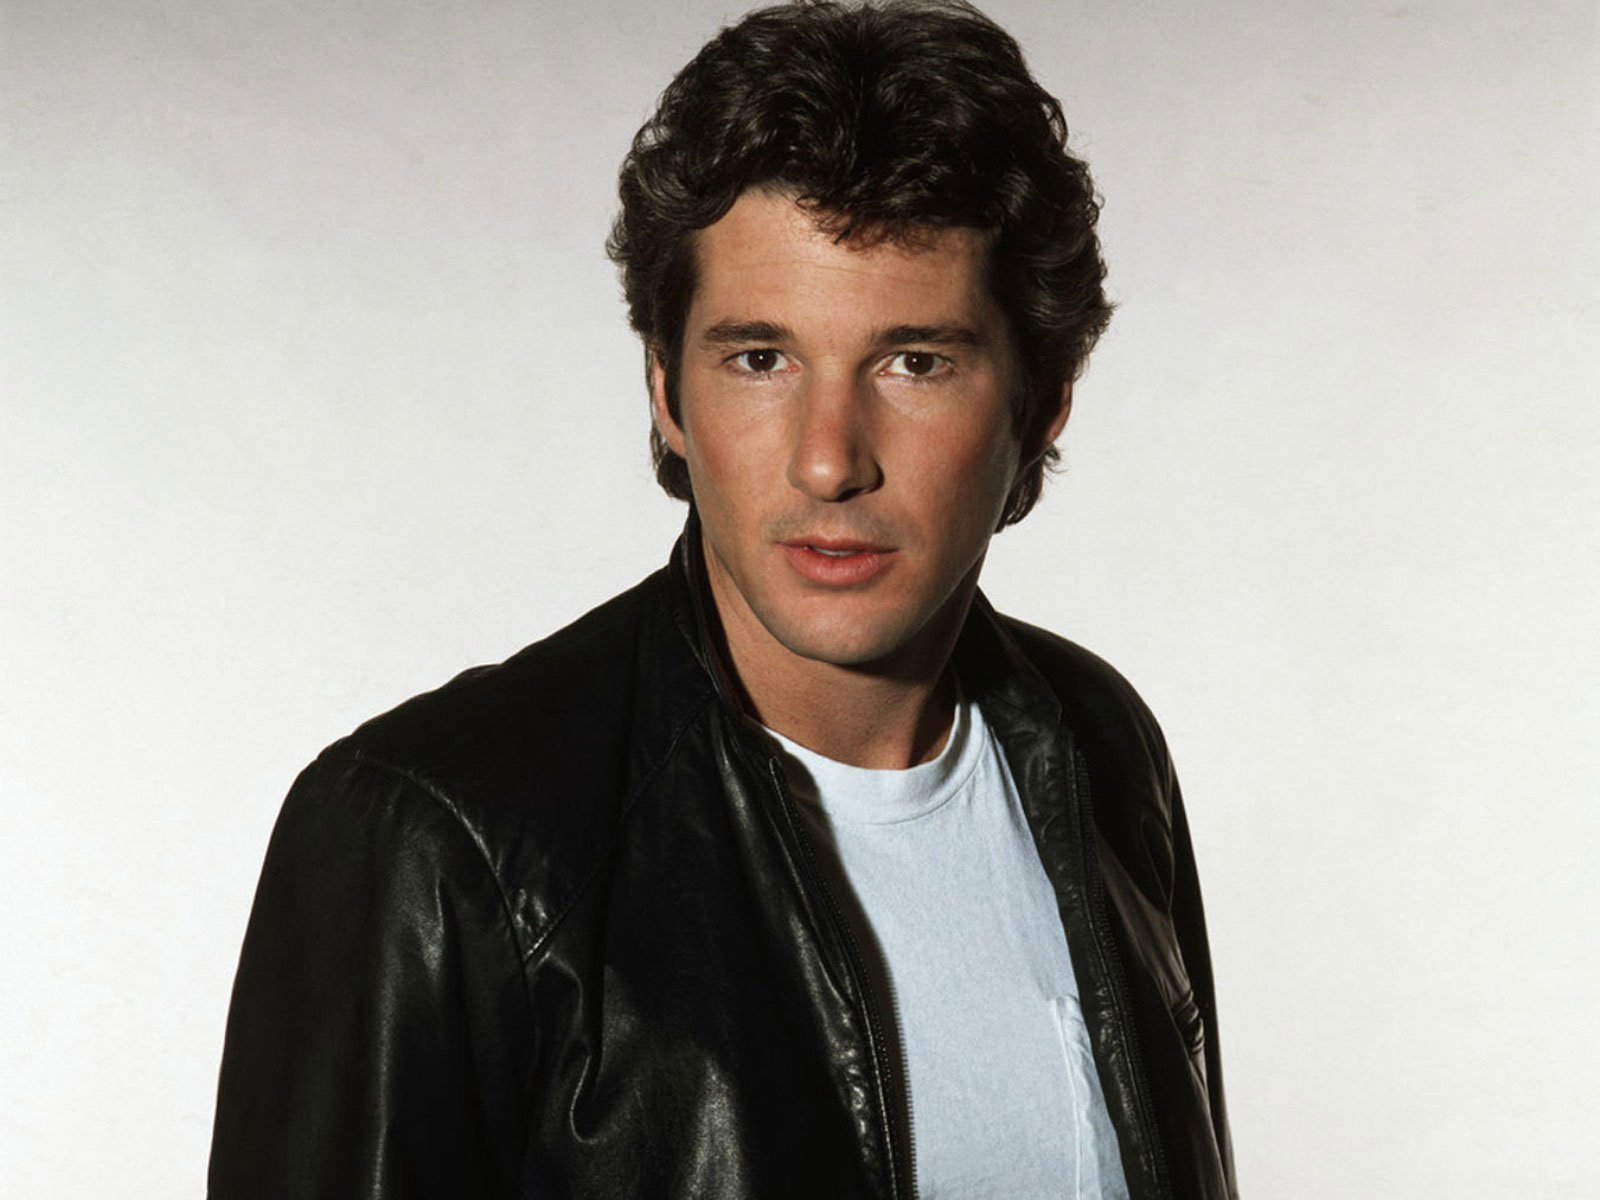 richard gere - photo #29